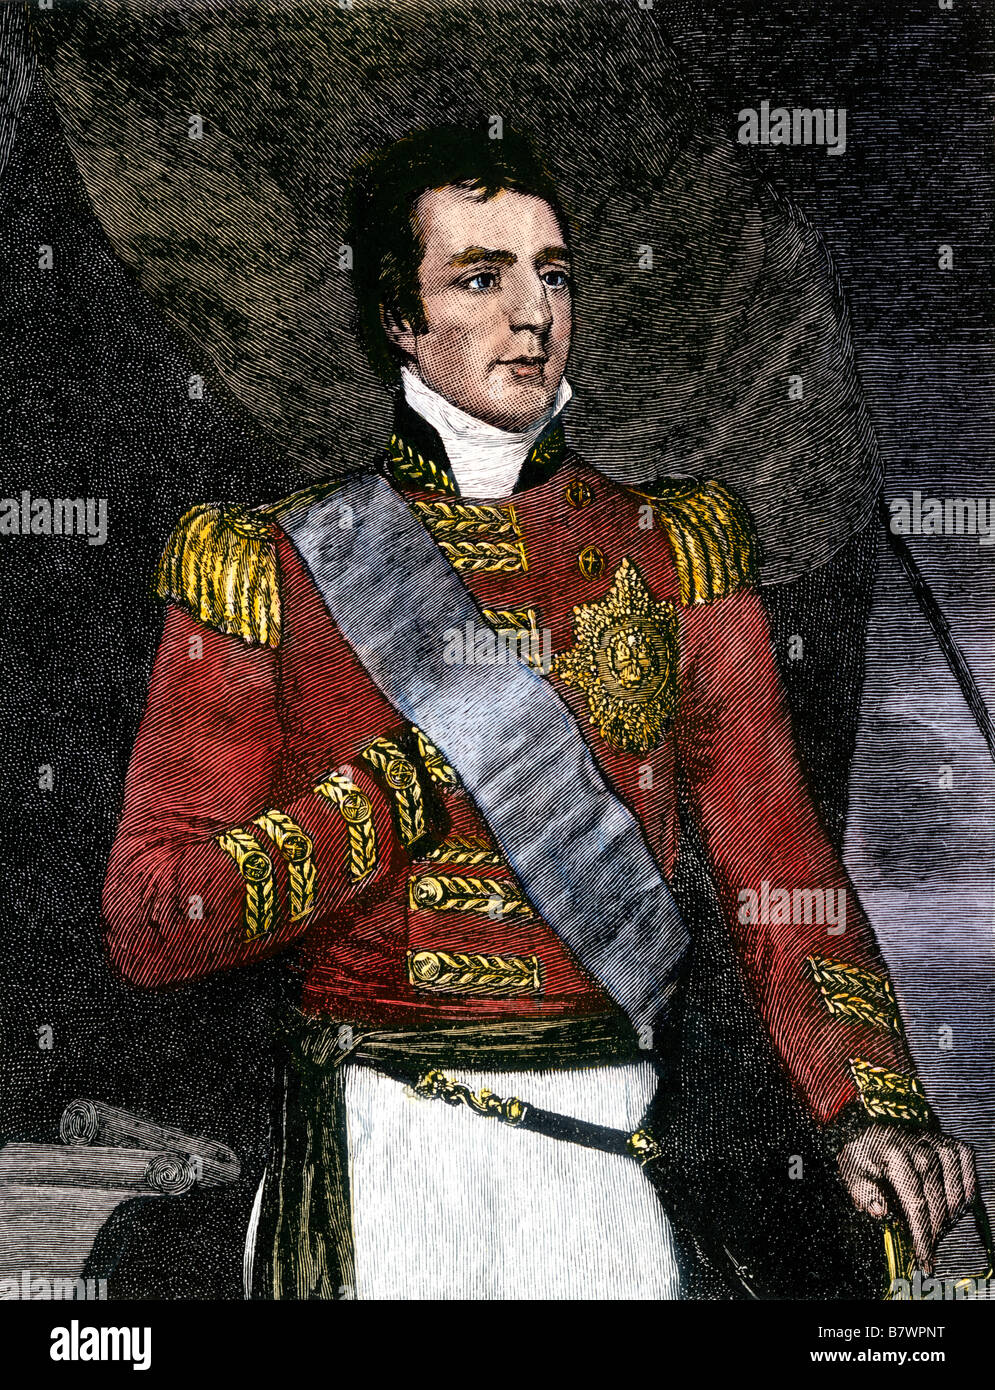 Major General Arthur Wellesley in 1806, later the Duke of Wellington. Hand-colored woodcut - Stock Image